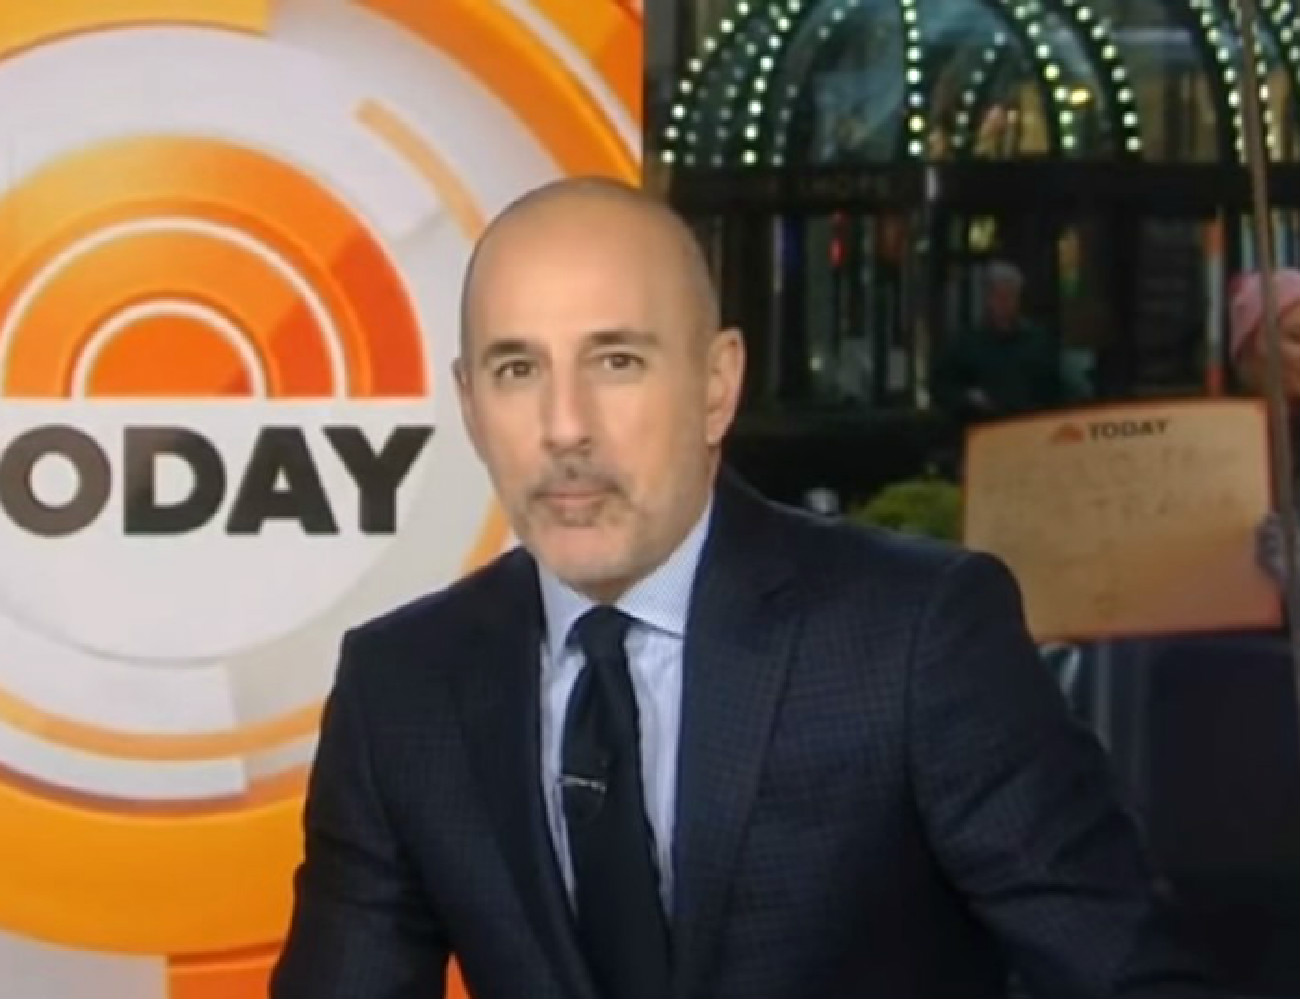 NBC's Report Finding 'No Evidence' Management Knew Of Matt Lauer's Behavior Met With Skepticism